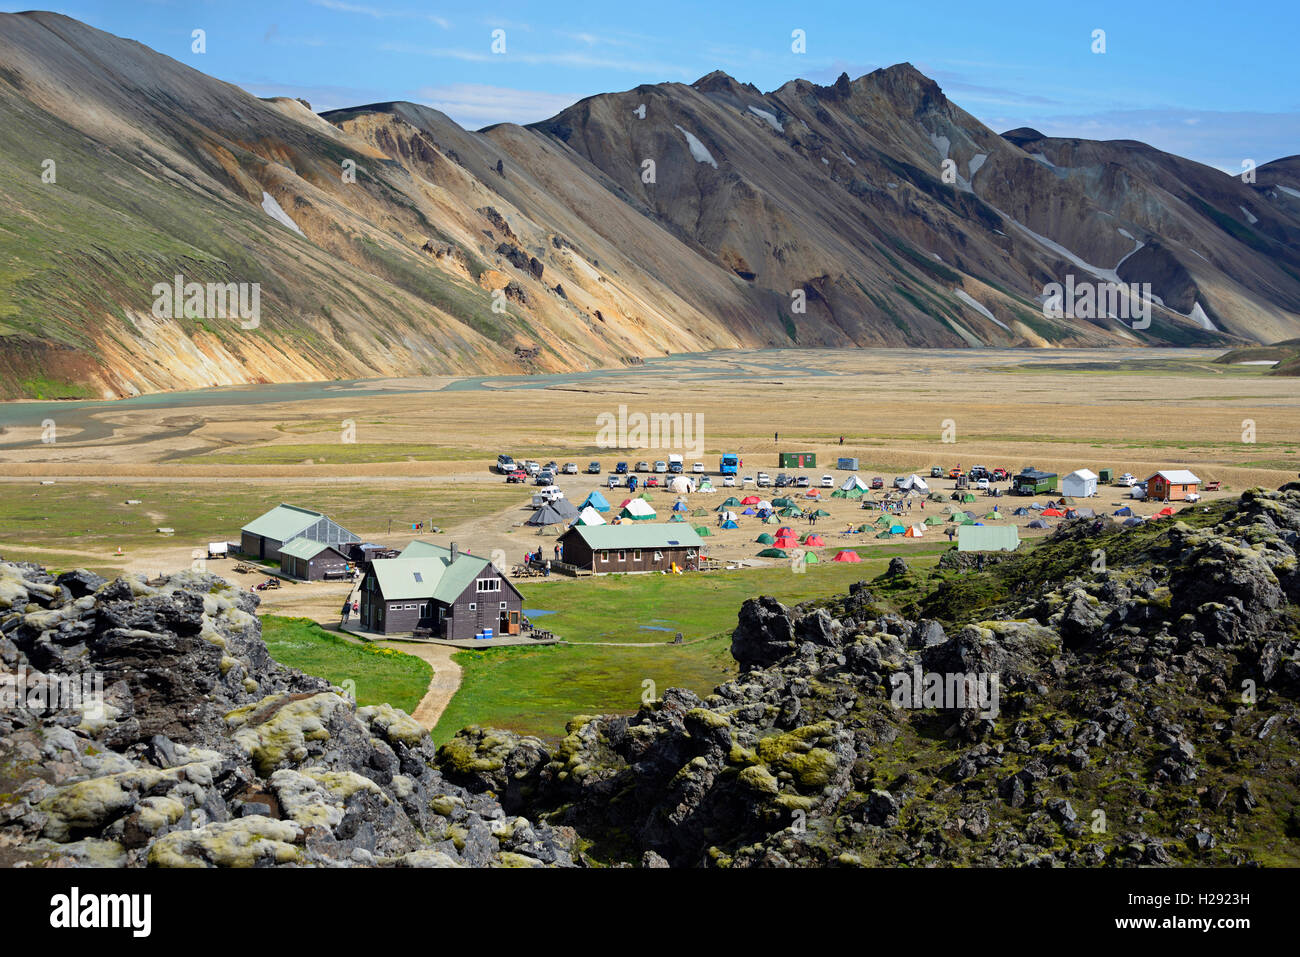 Camp site and Laugahraun lava field, Fjallabak National Park, Landmannalaugar, Iceland - Stock Image